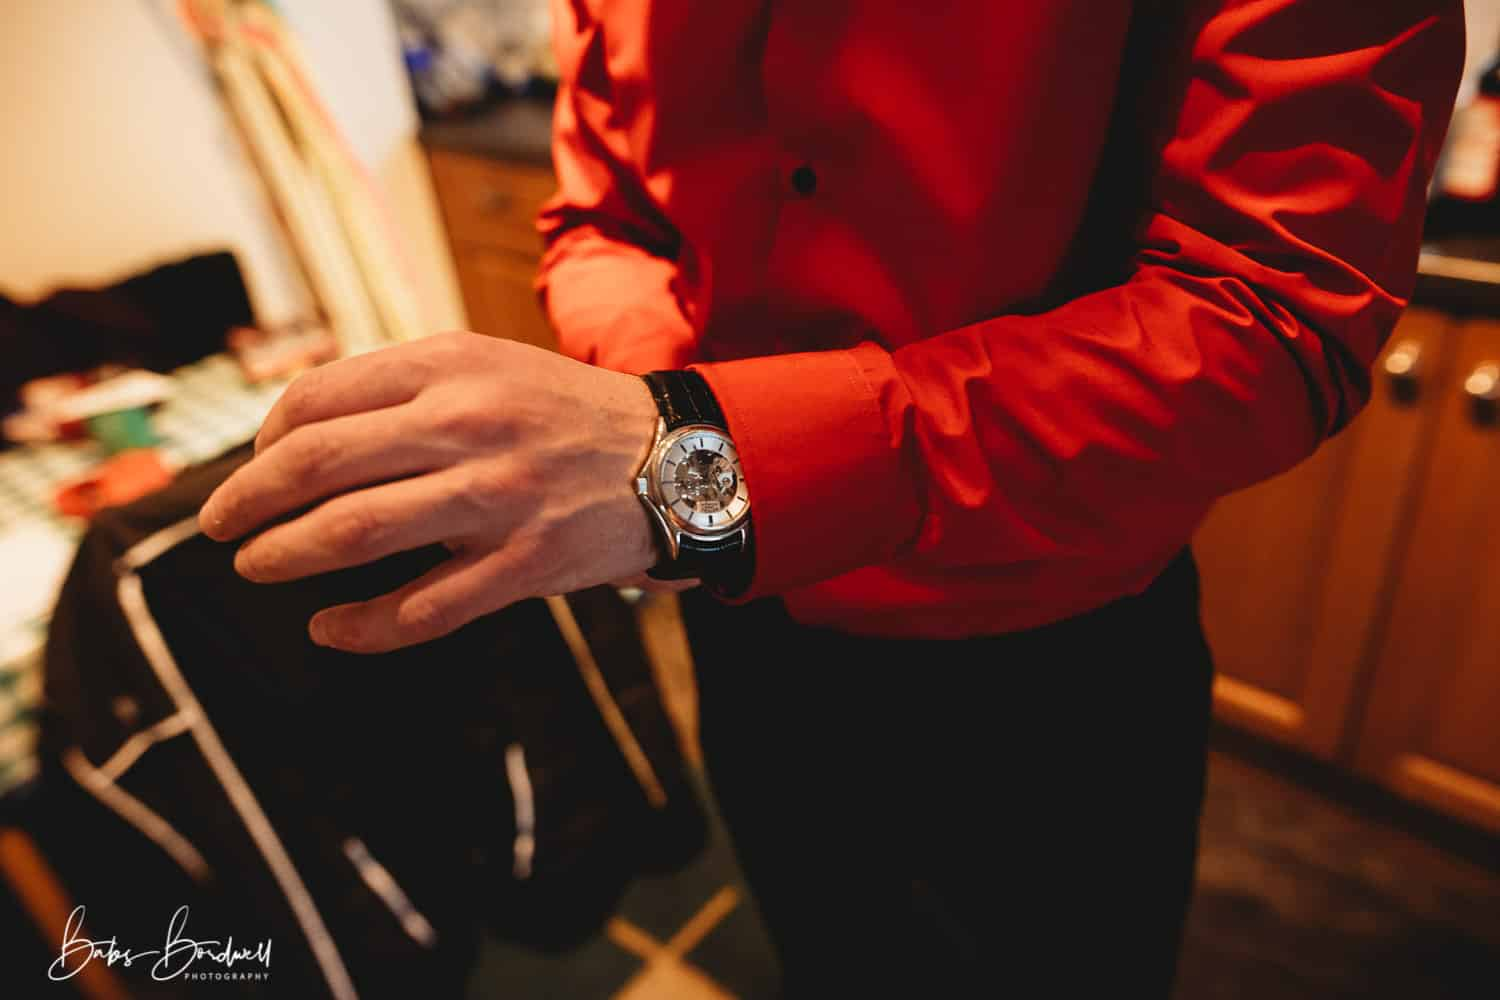 groom in red shirt adjusting his watch strap